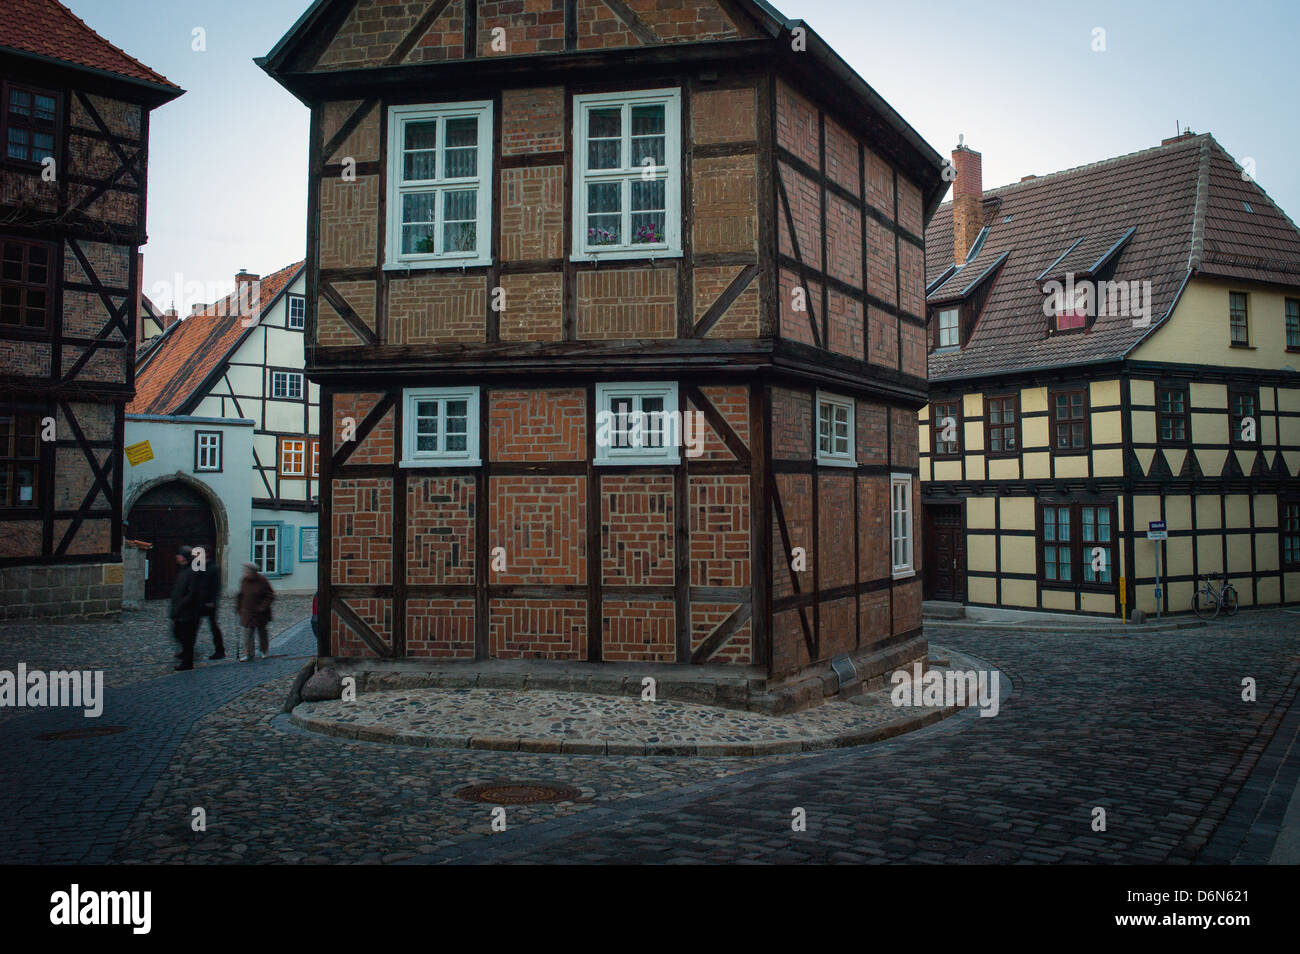 Quedlinburg, Germany, the fire lane in the old town - Stock Image